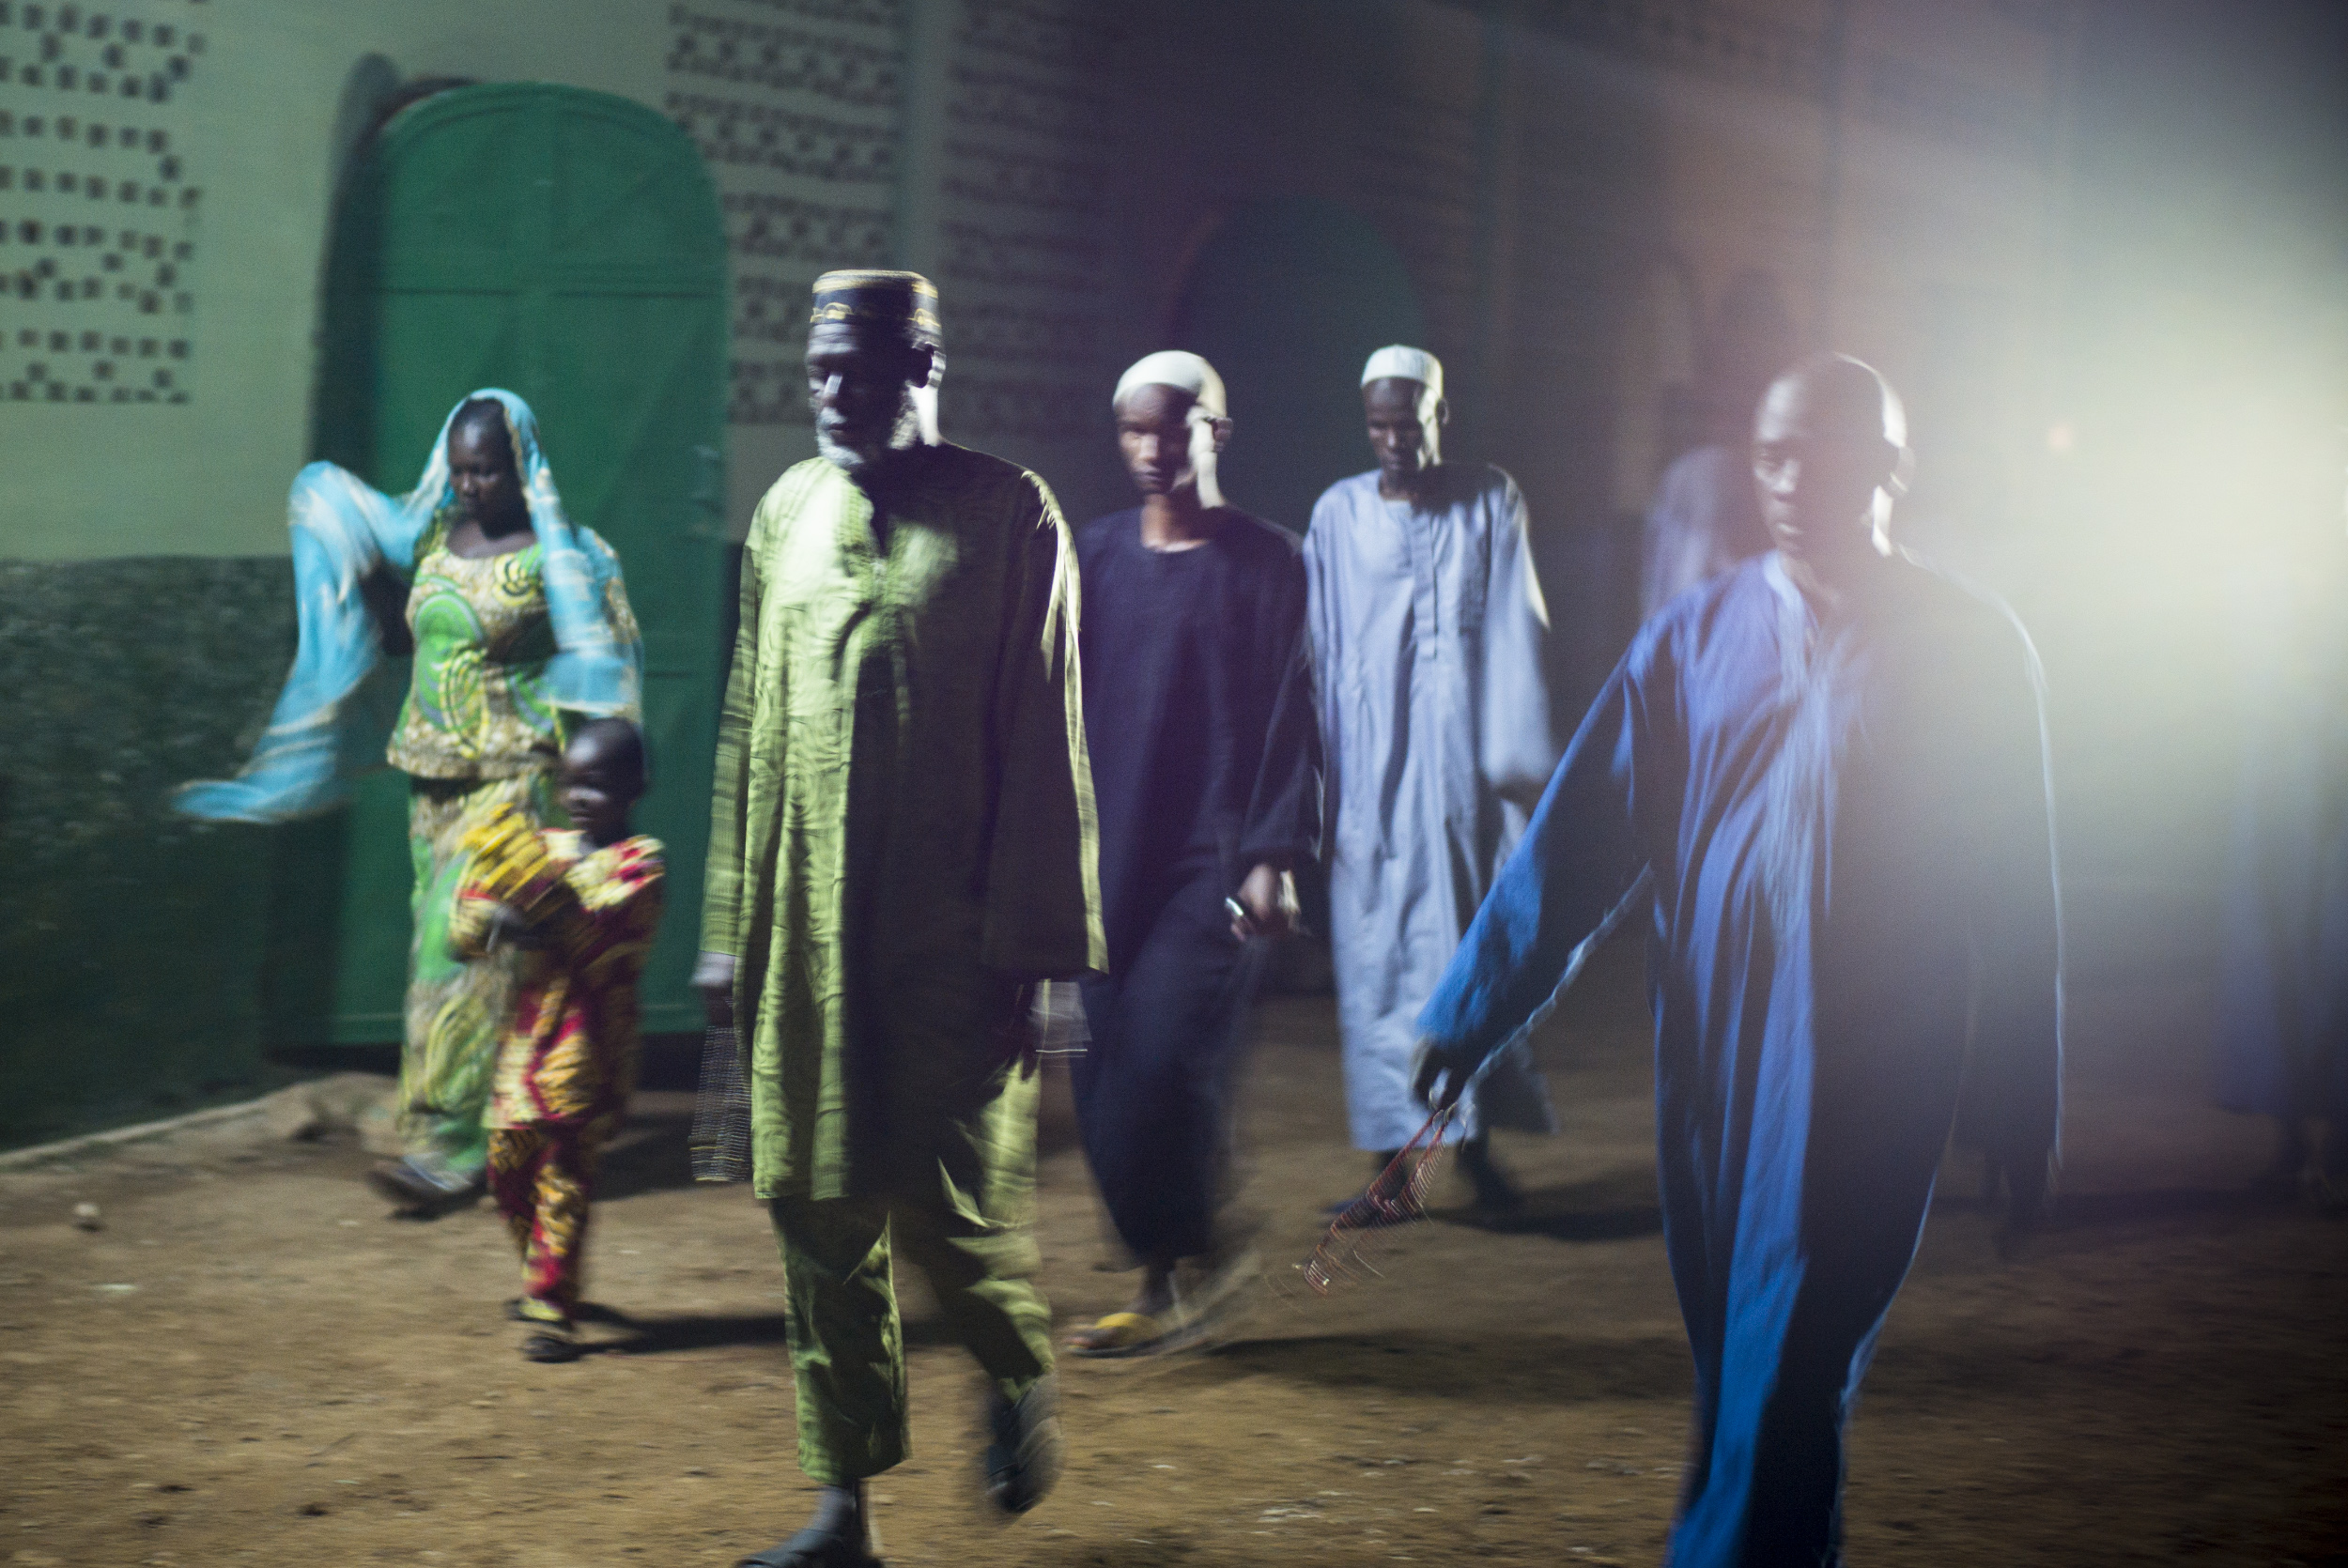 Muslims leave the central mosque after the first prayer of the day in Bangui, Central African Republic, Nov. 30, 2015.